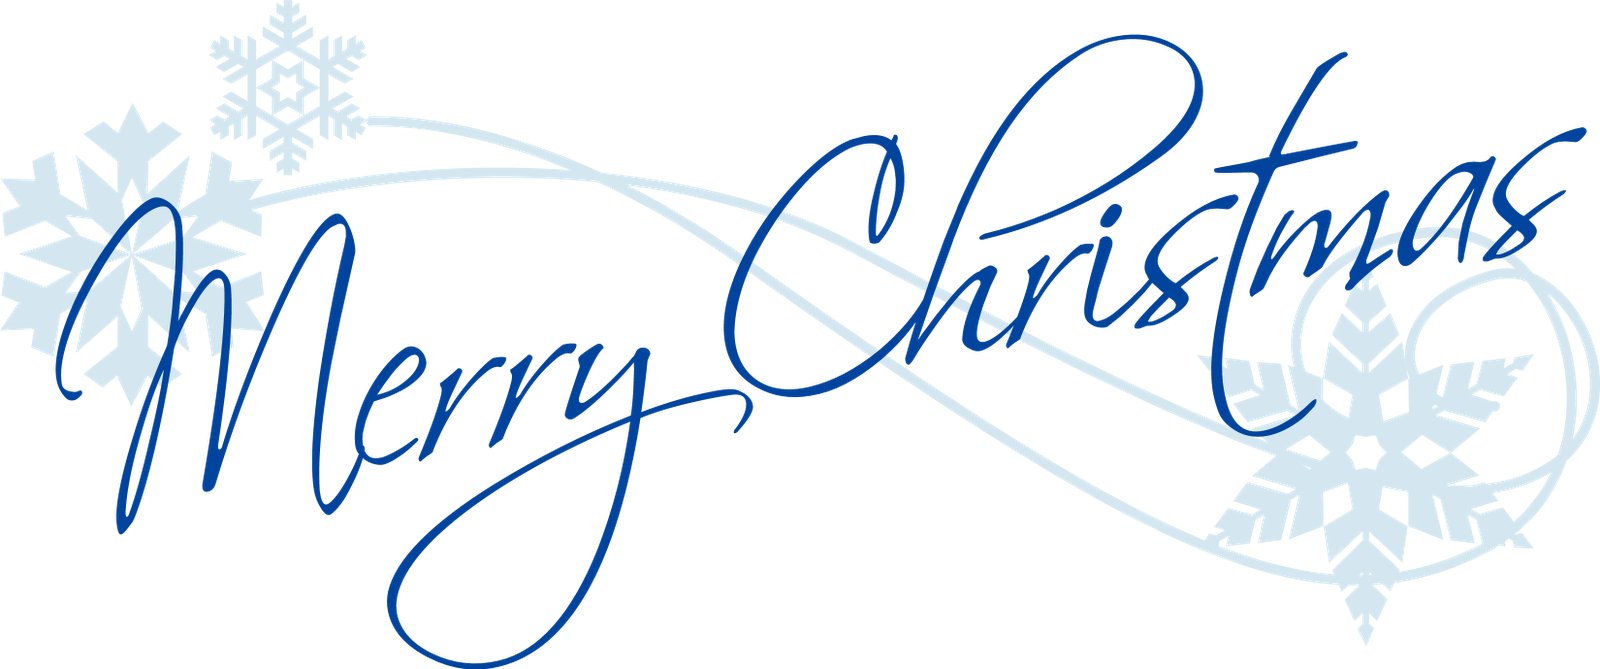 One Line Text Art Hug : Image merry christmas animal jam clans wiki